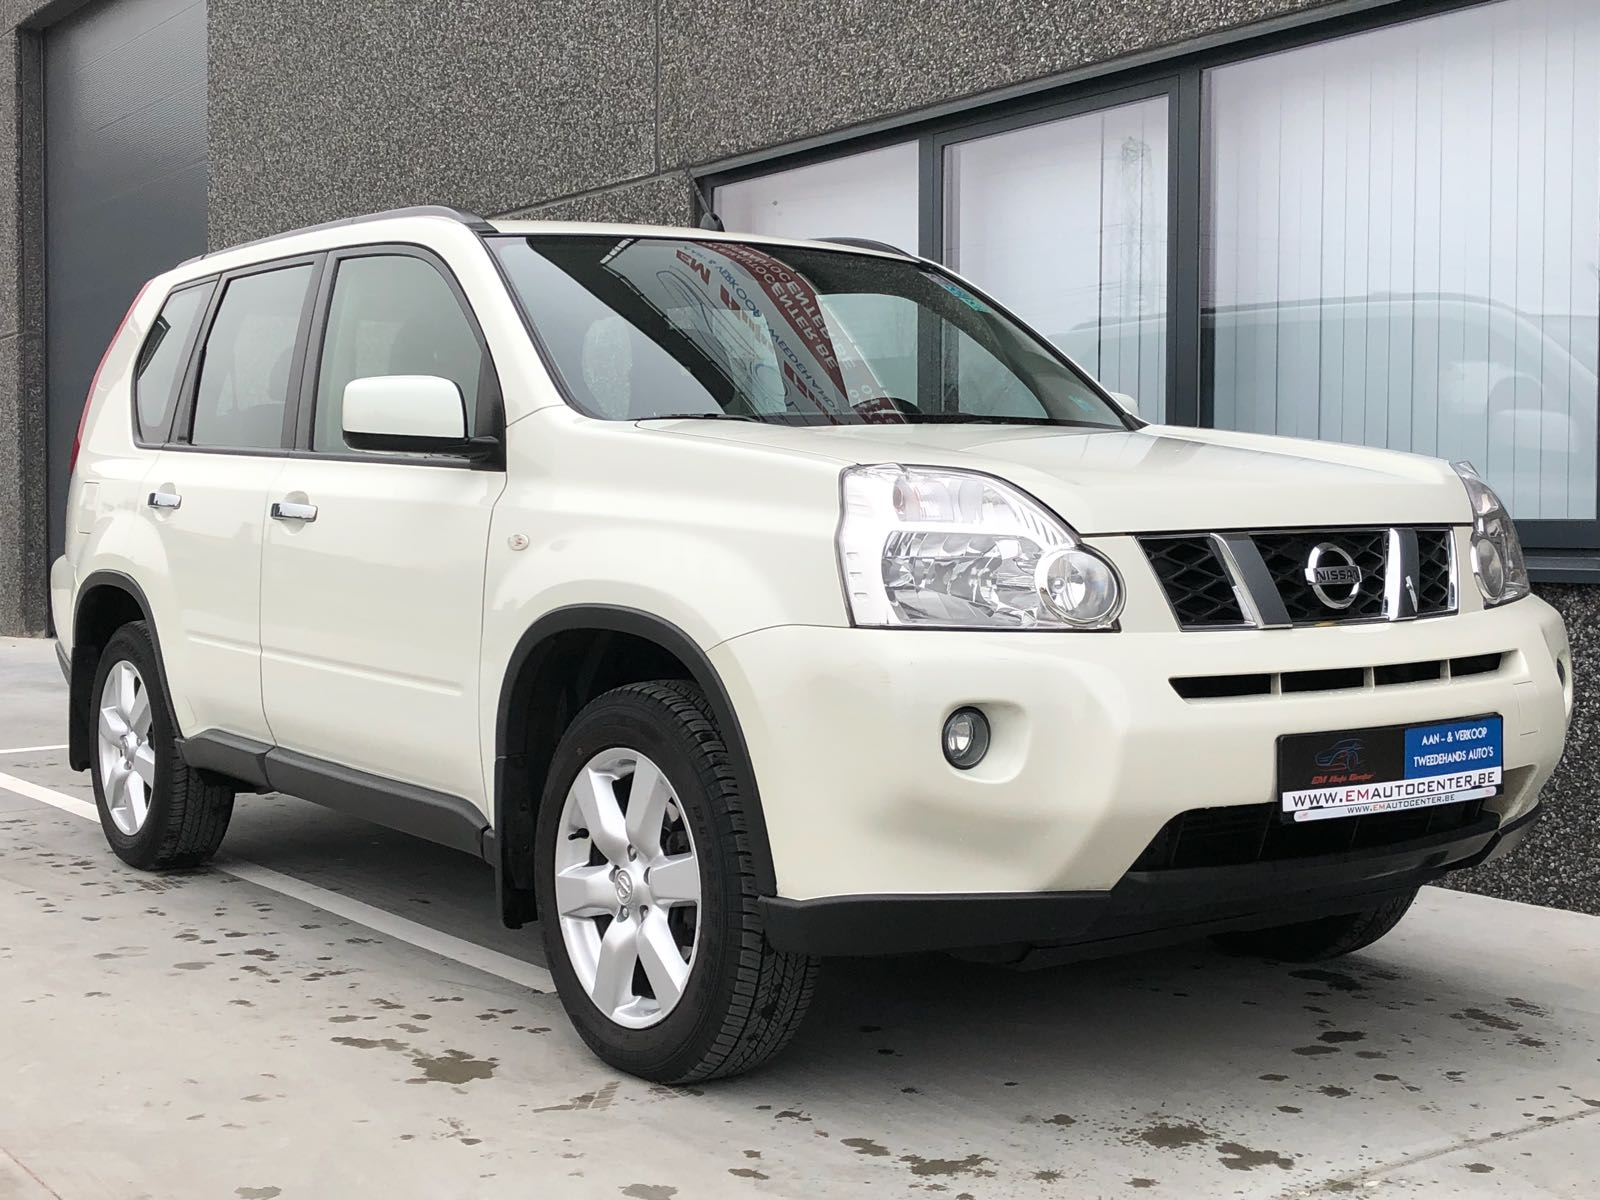 tweedehands nissan x trail 2 0 dci 4x4 met slechts 64 000 km. Black Bedroom Furniture Sets. Home Design Ideas